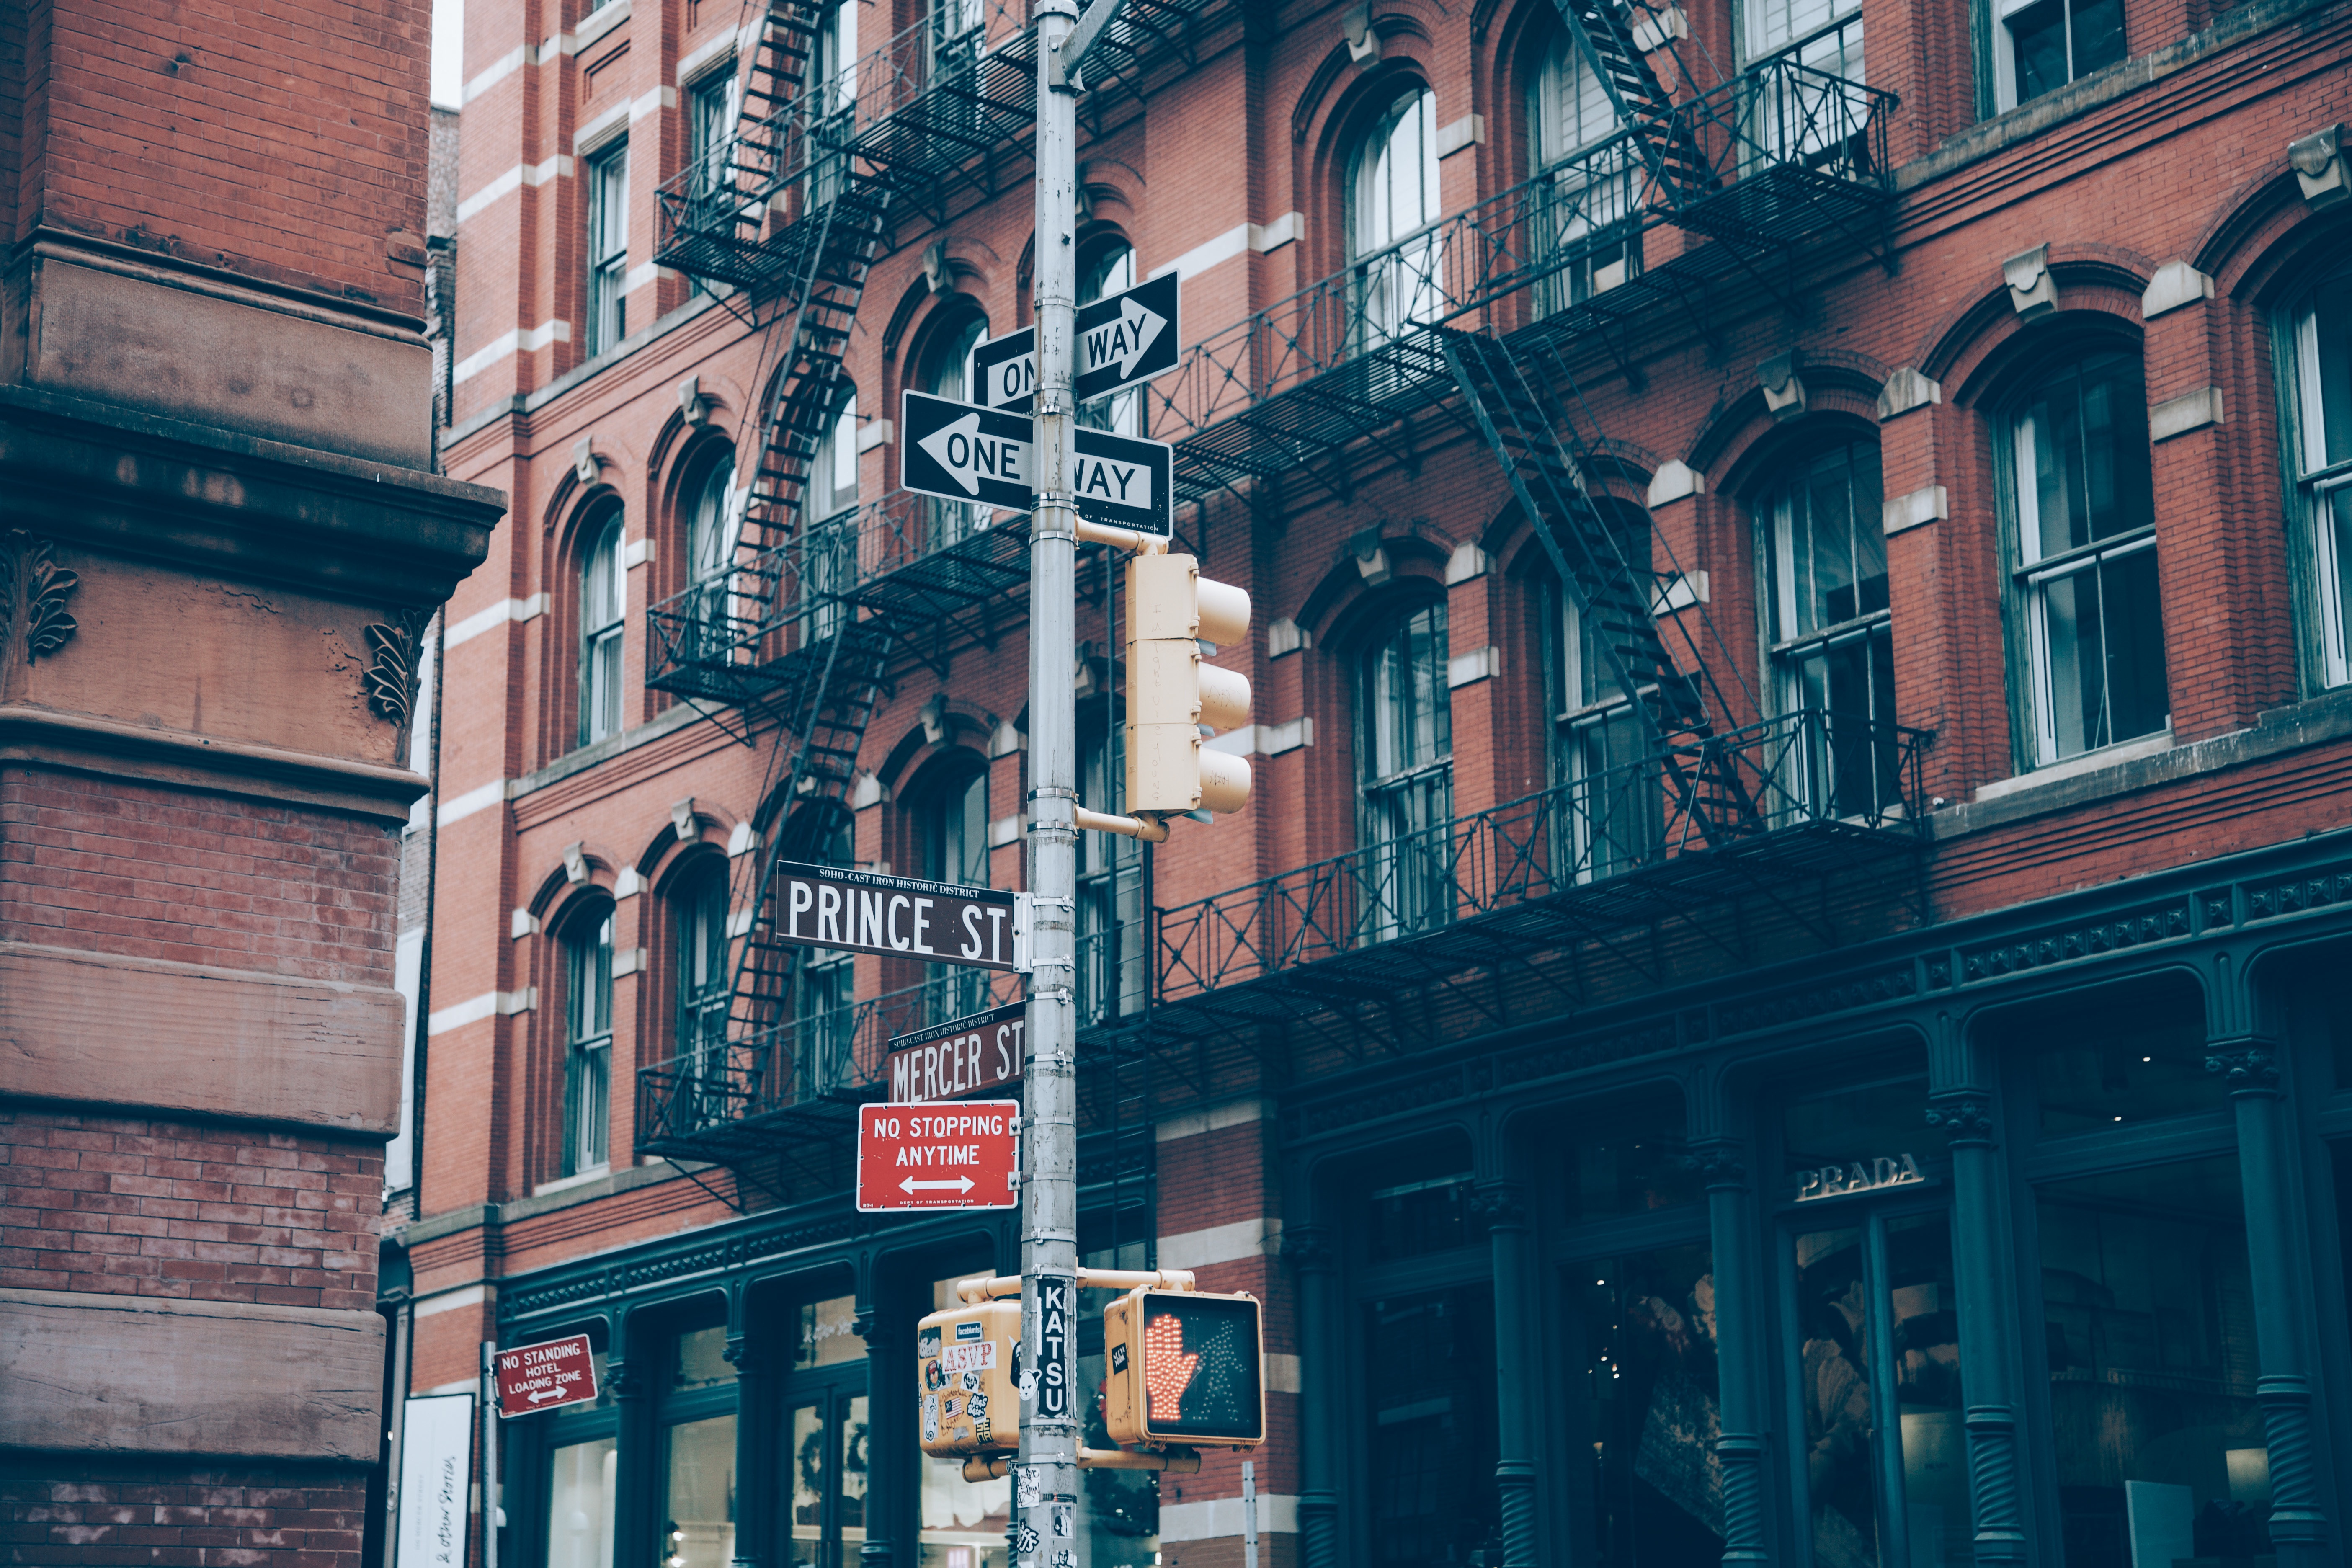 Meeting Street, corner, new york, street, signs, one way, intersection, crosswalk, city, urban, buildings, apartments, bricks